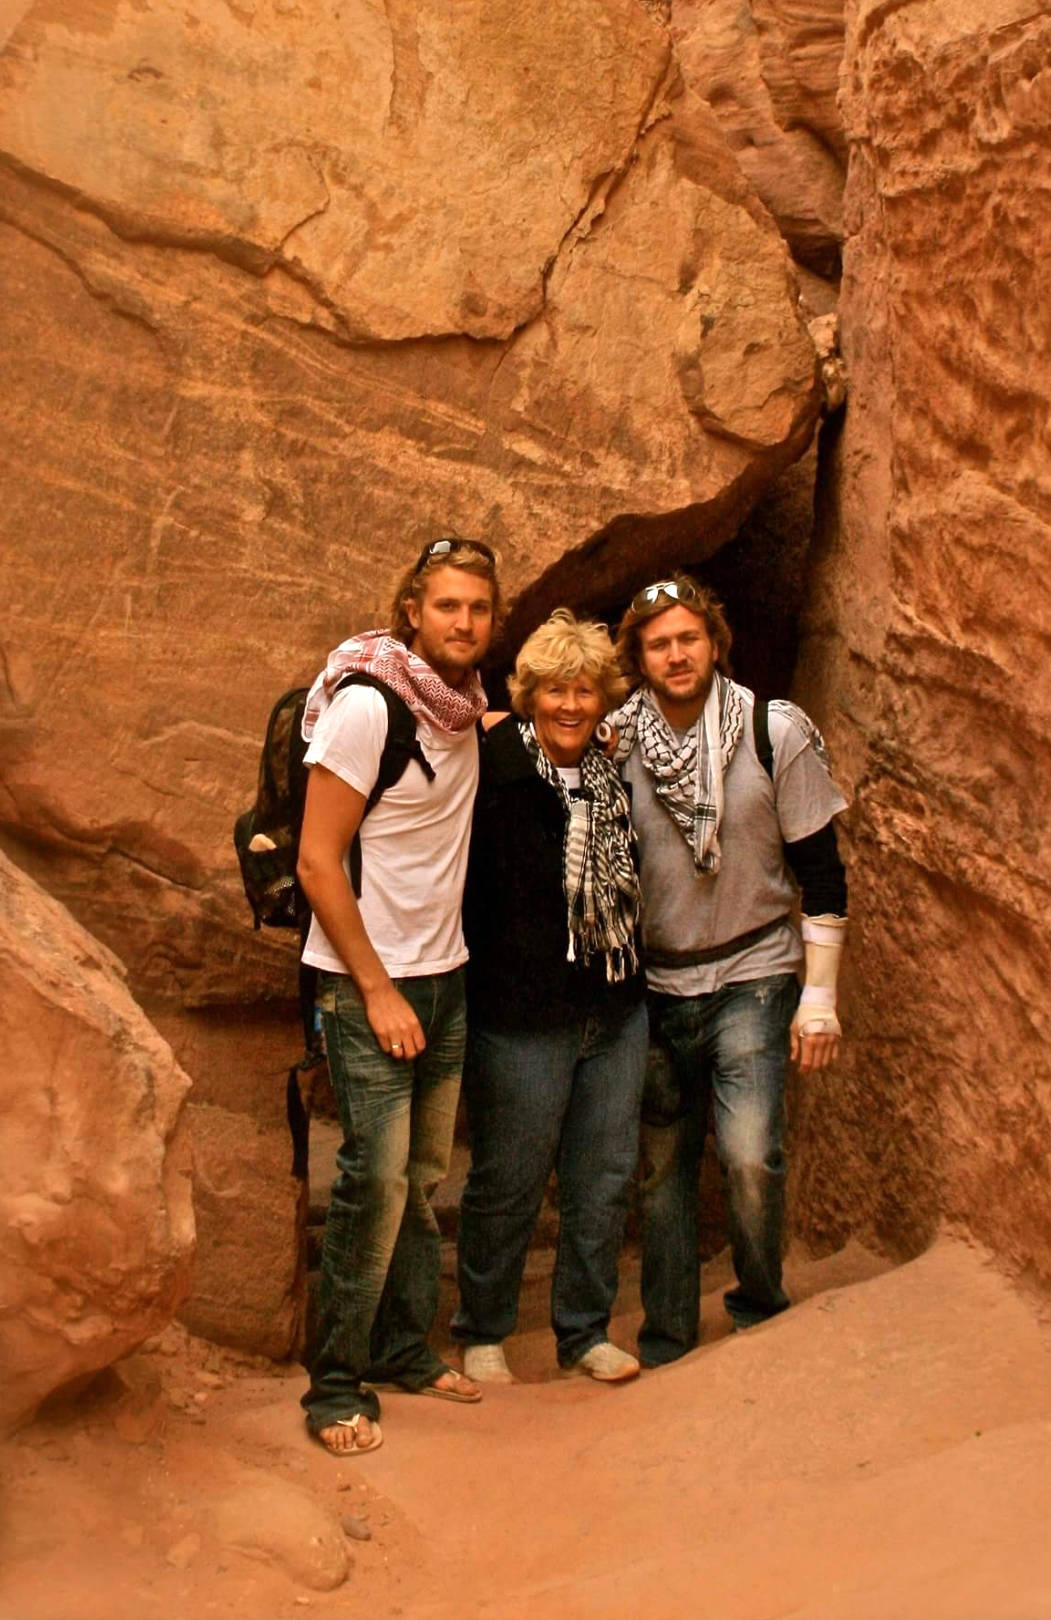 Brothers Erik and Kirk Brown grew up travelling the world together. Here they are pictured with their mom, Dorothy, in Petra, Jordan. Photo courtesy of Kirk Brown